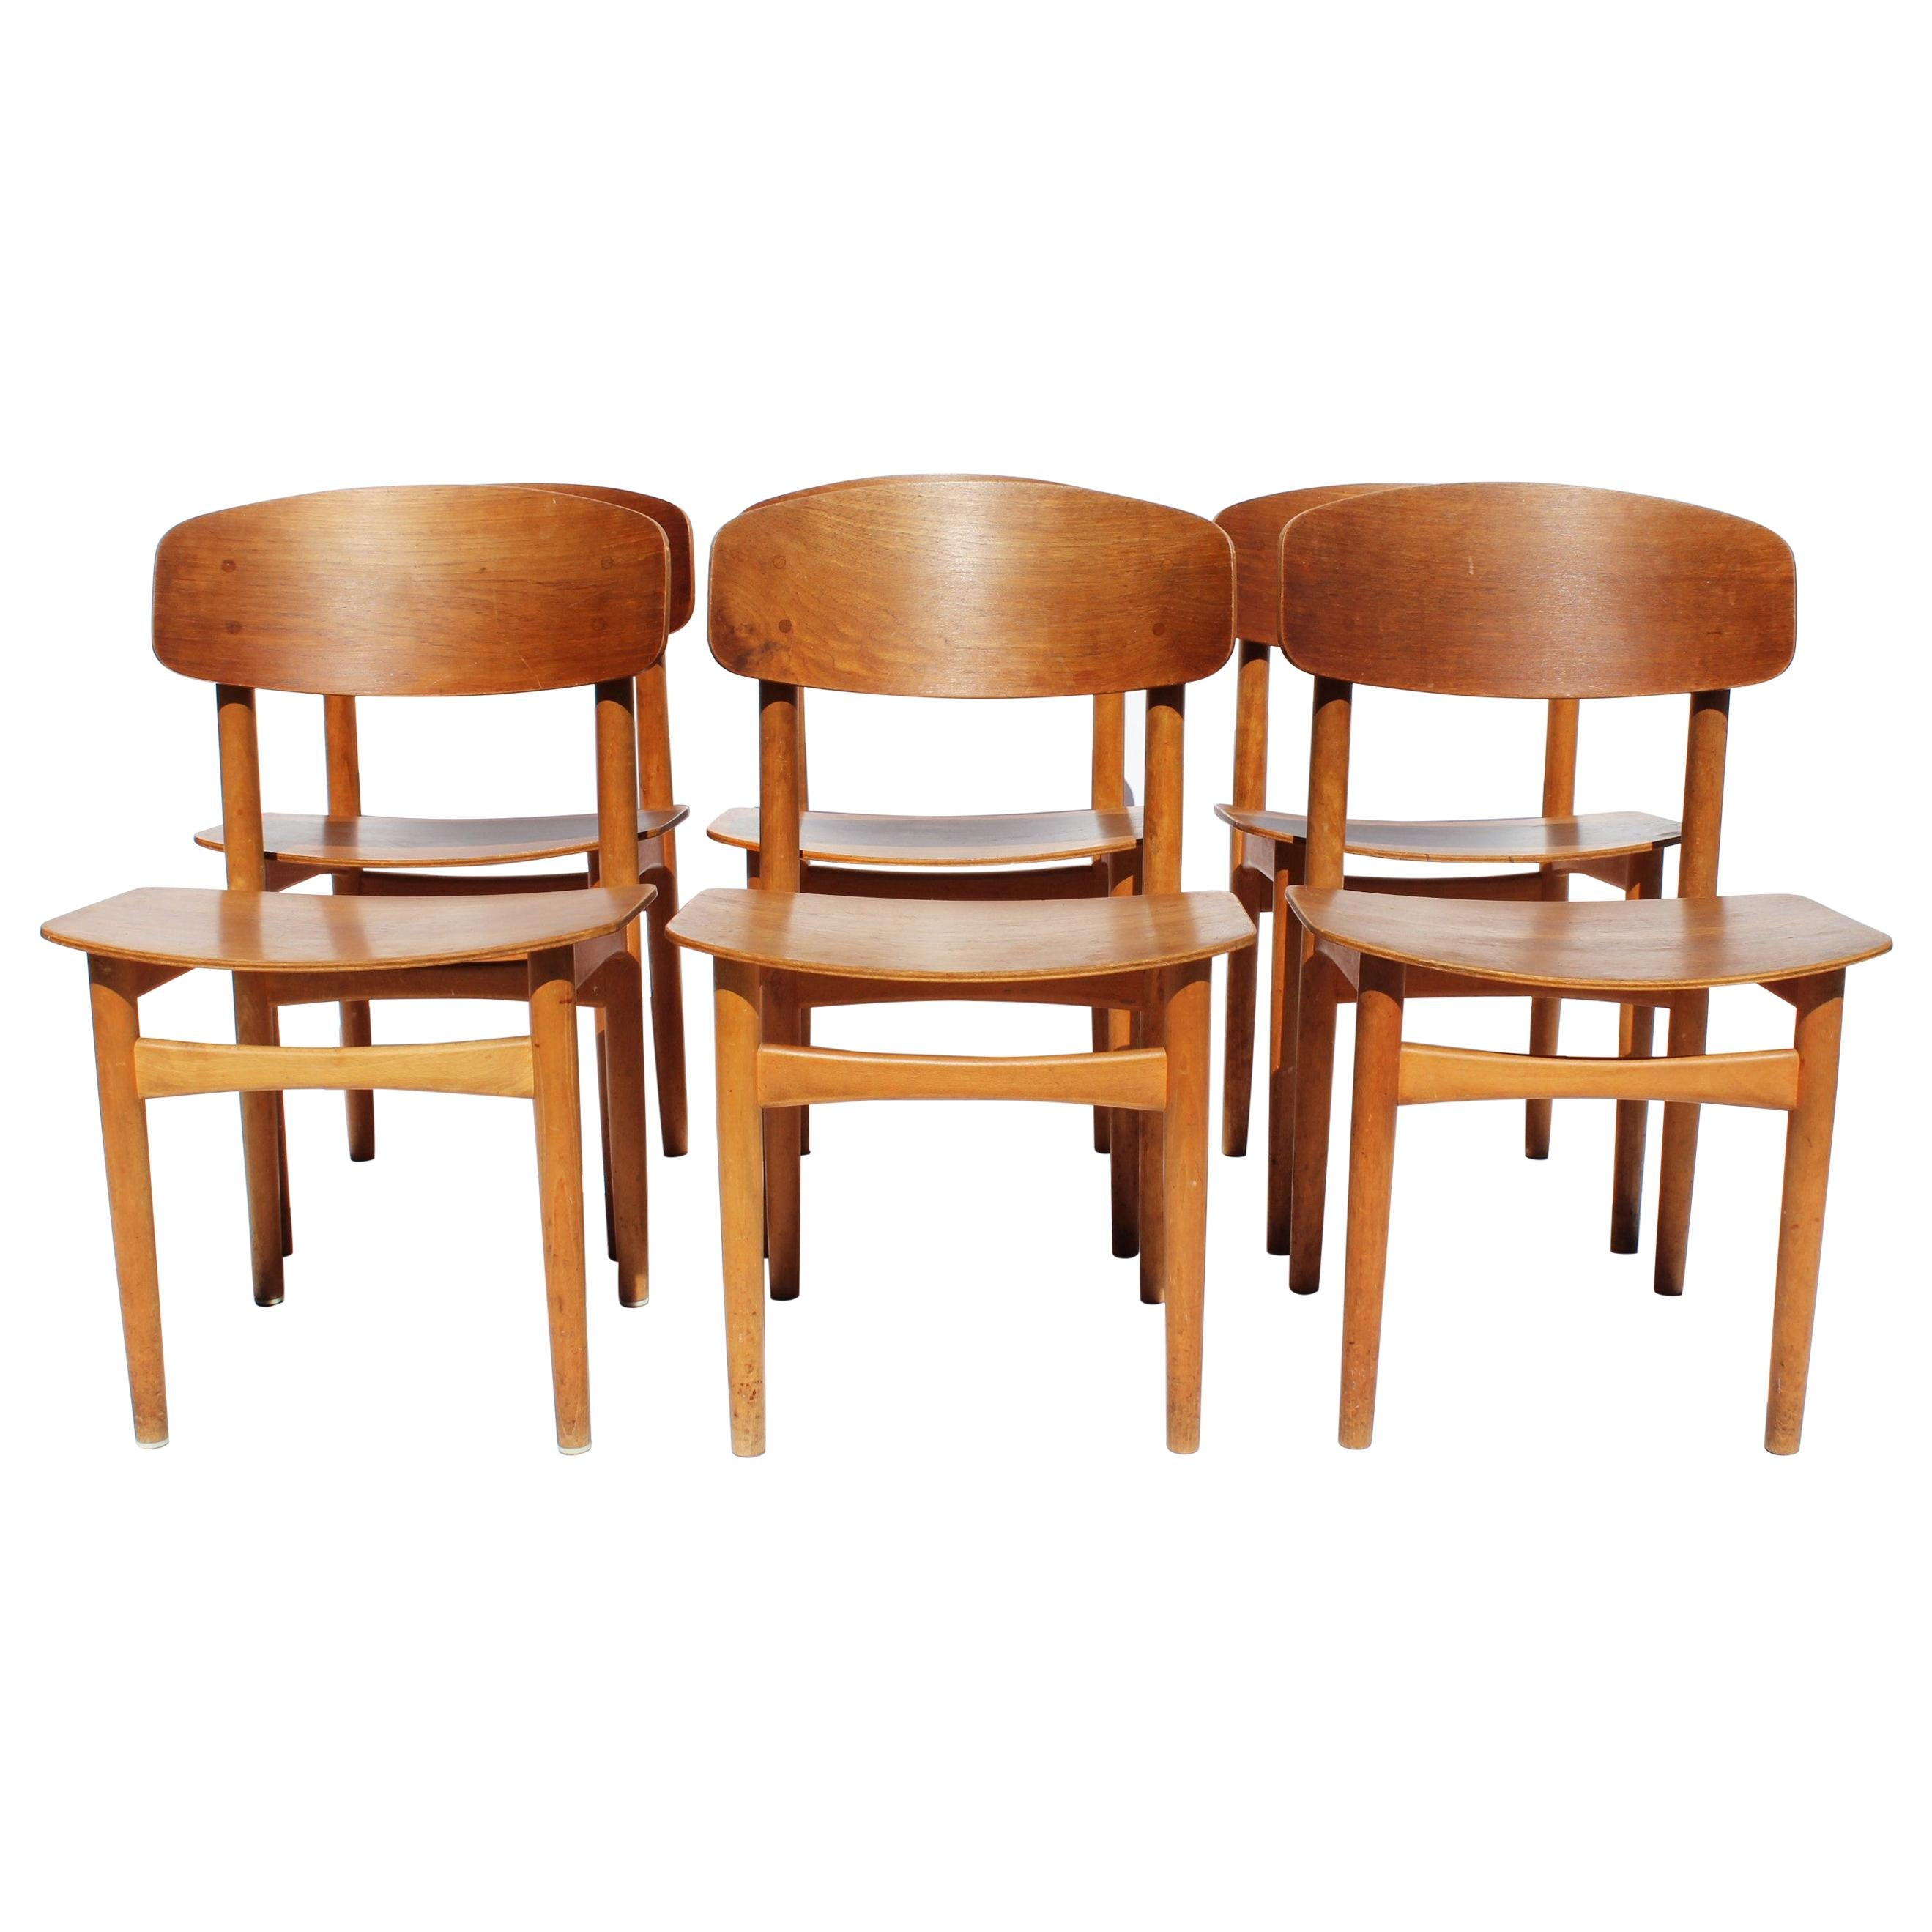 Set of Six Dining Chairs, Model 122 in Teak by Børge Mogensen, 1960s